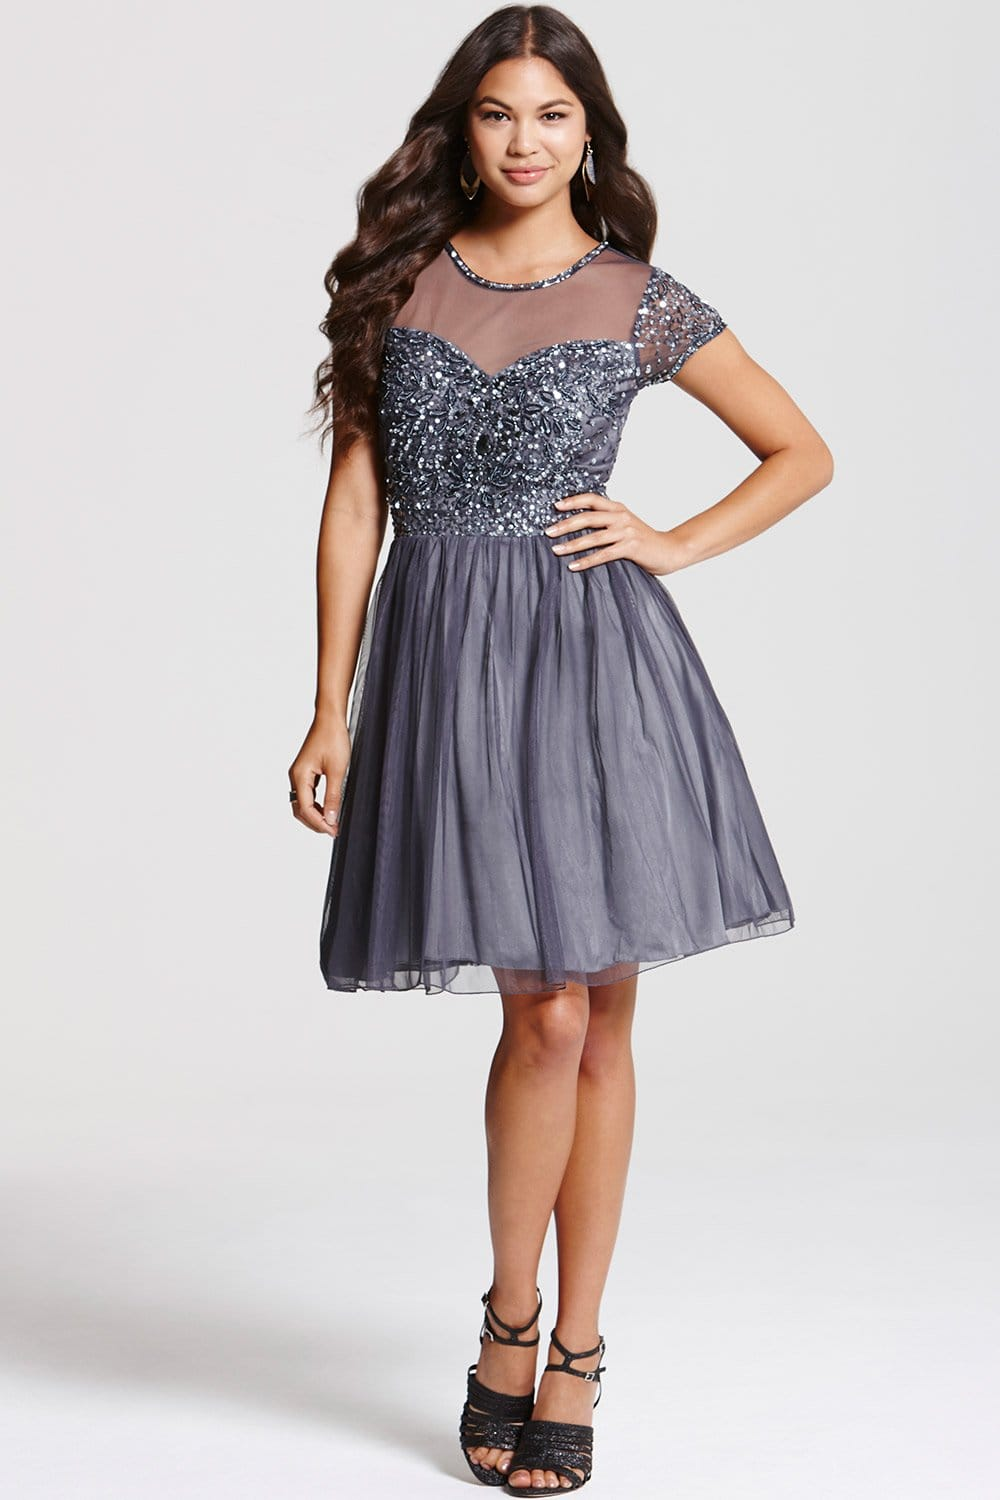 Grey Fit And Flare Embellished Dress From Little Mistress Uk